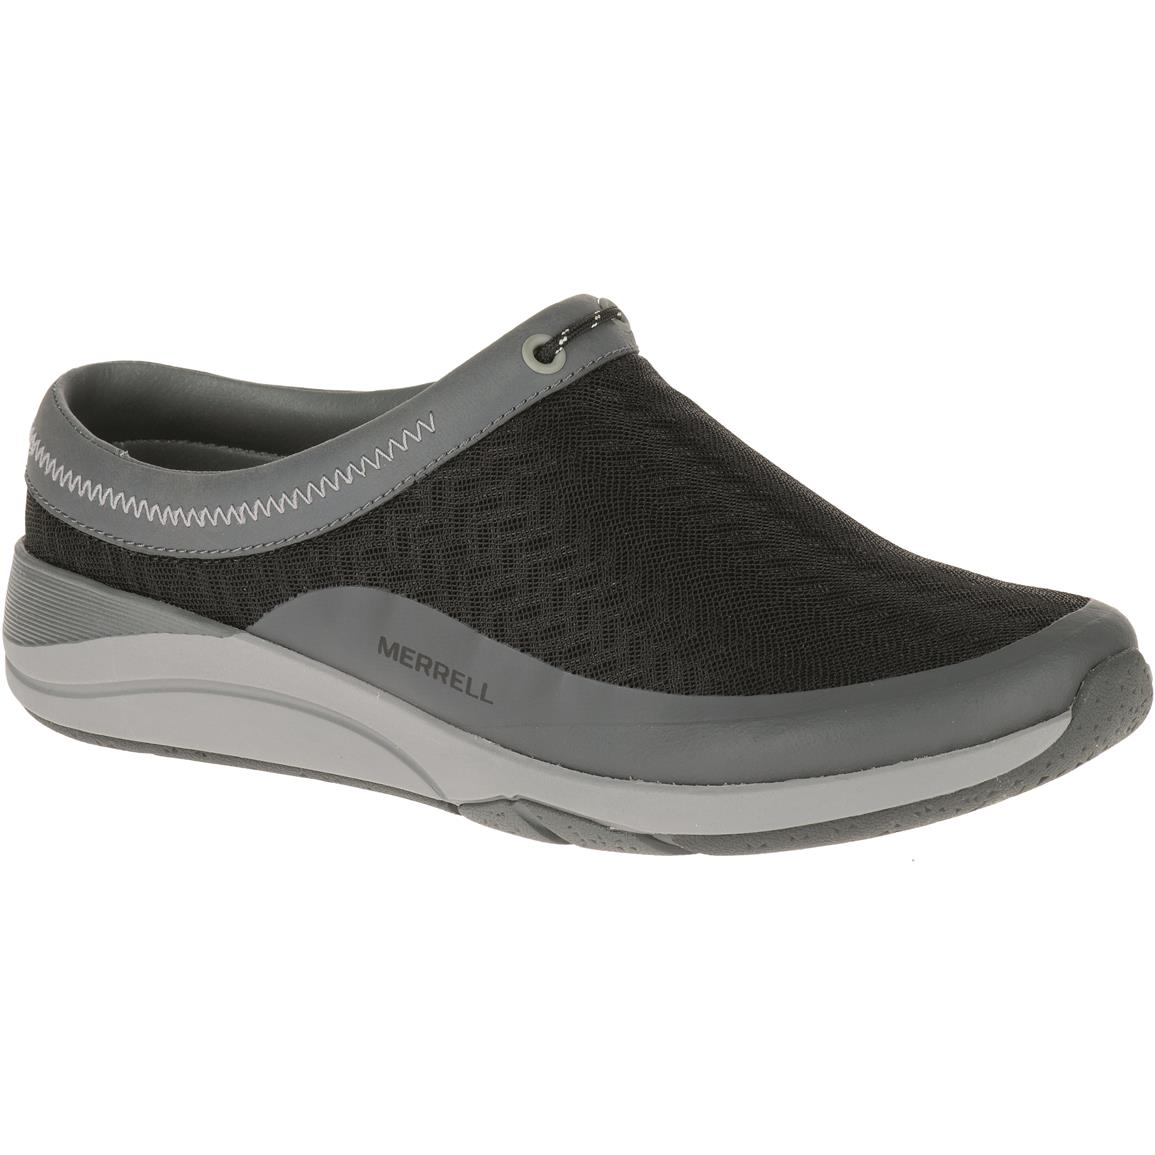 Merrell Applaud Women's Mesh Slide Shoes, Black